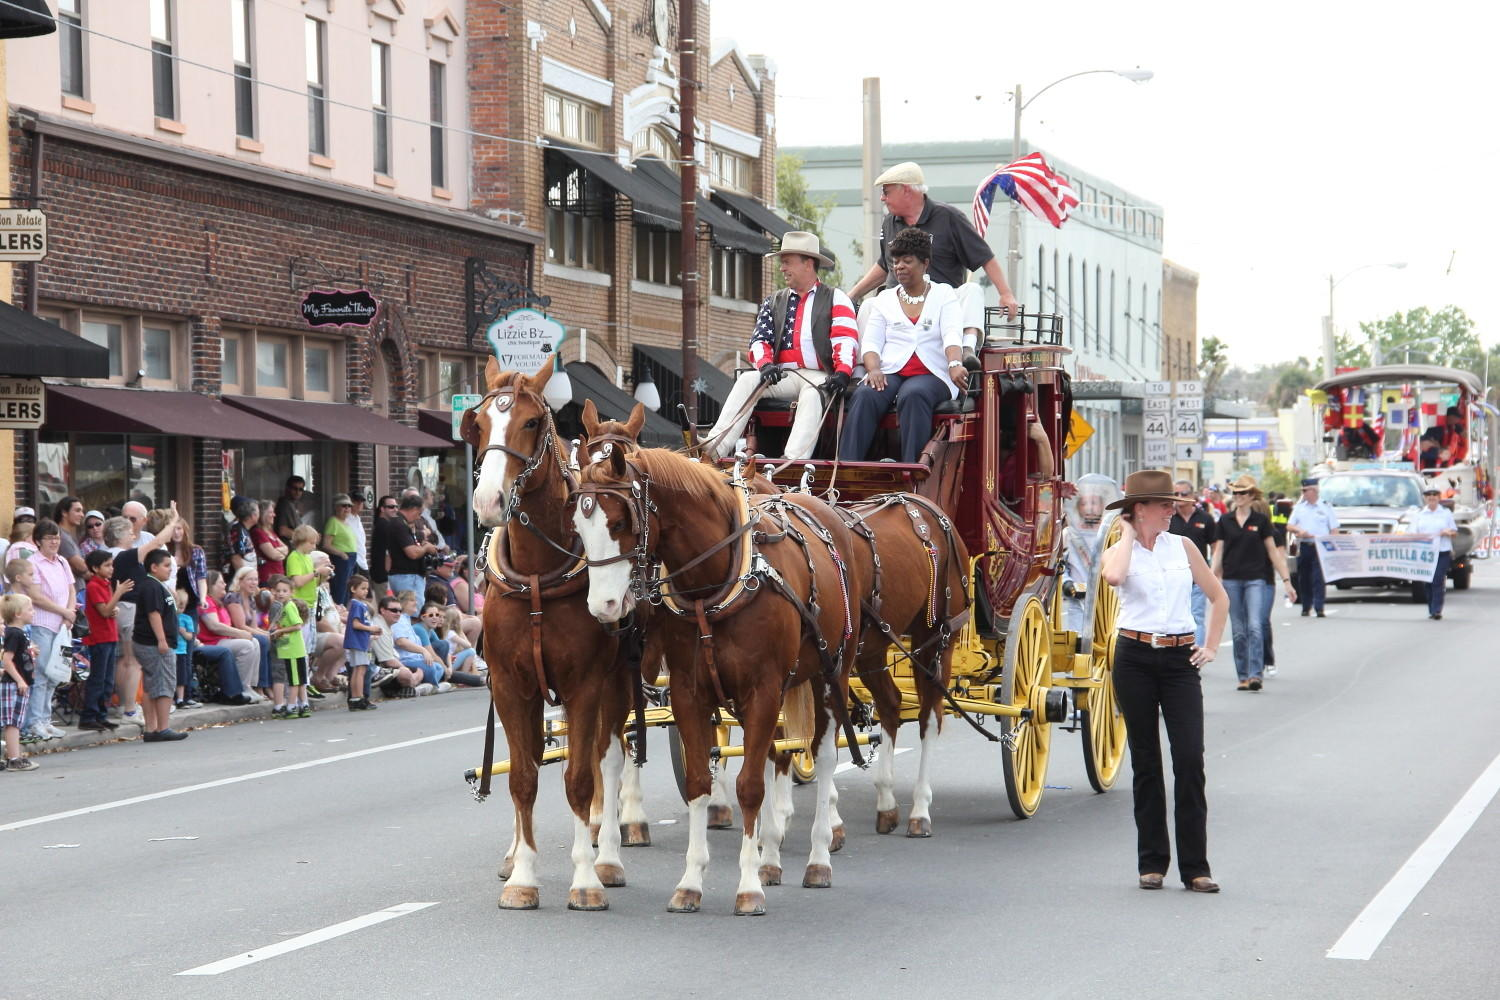 A stagecoach takes part in the 2013 Georgefest parade in Eustis.